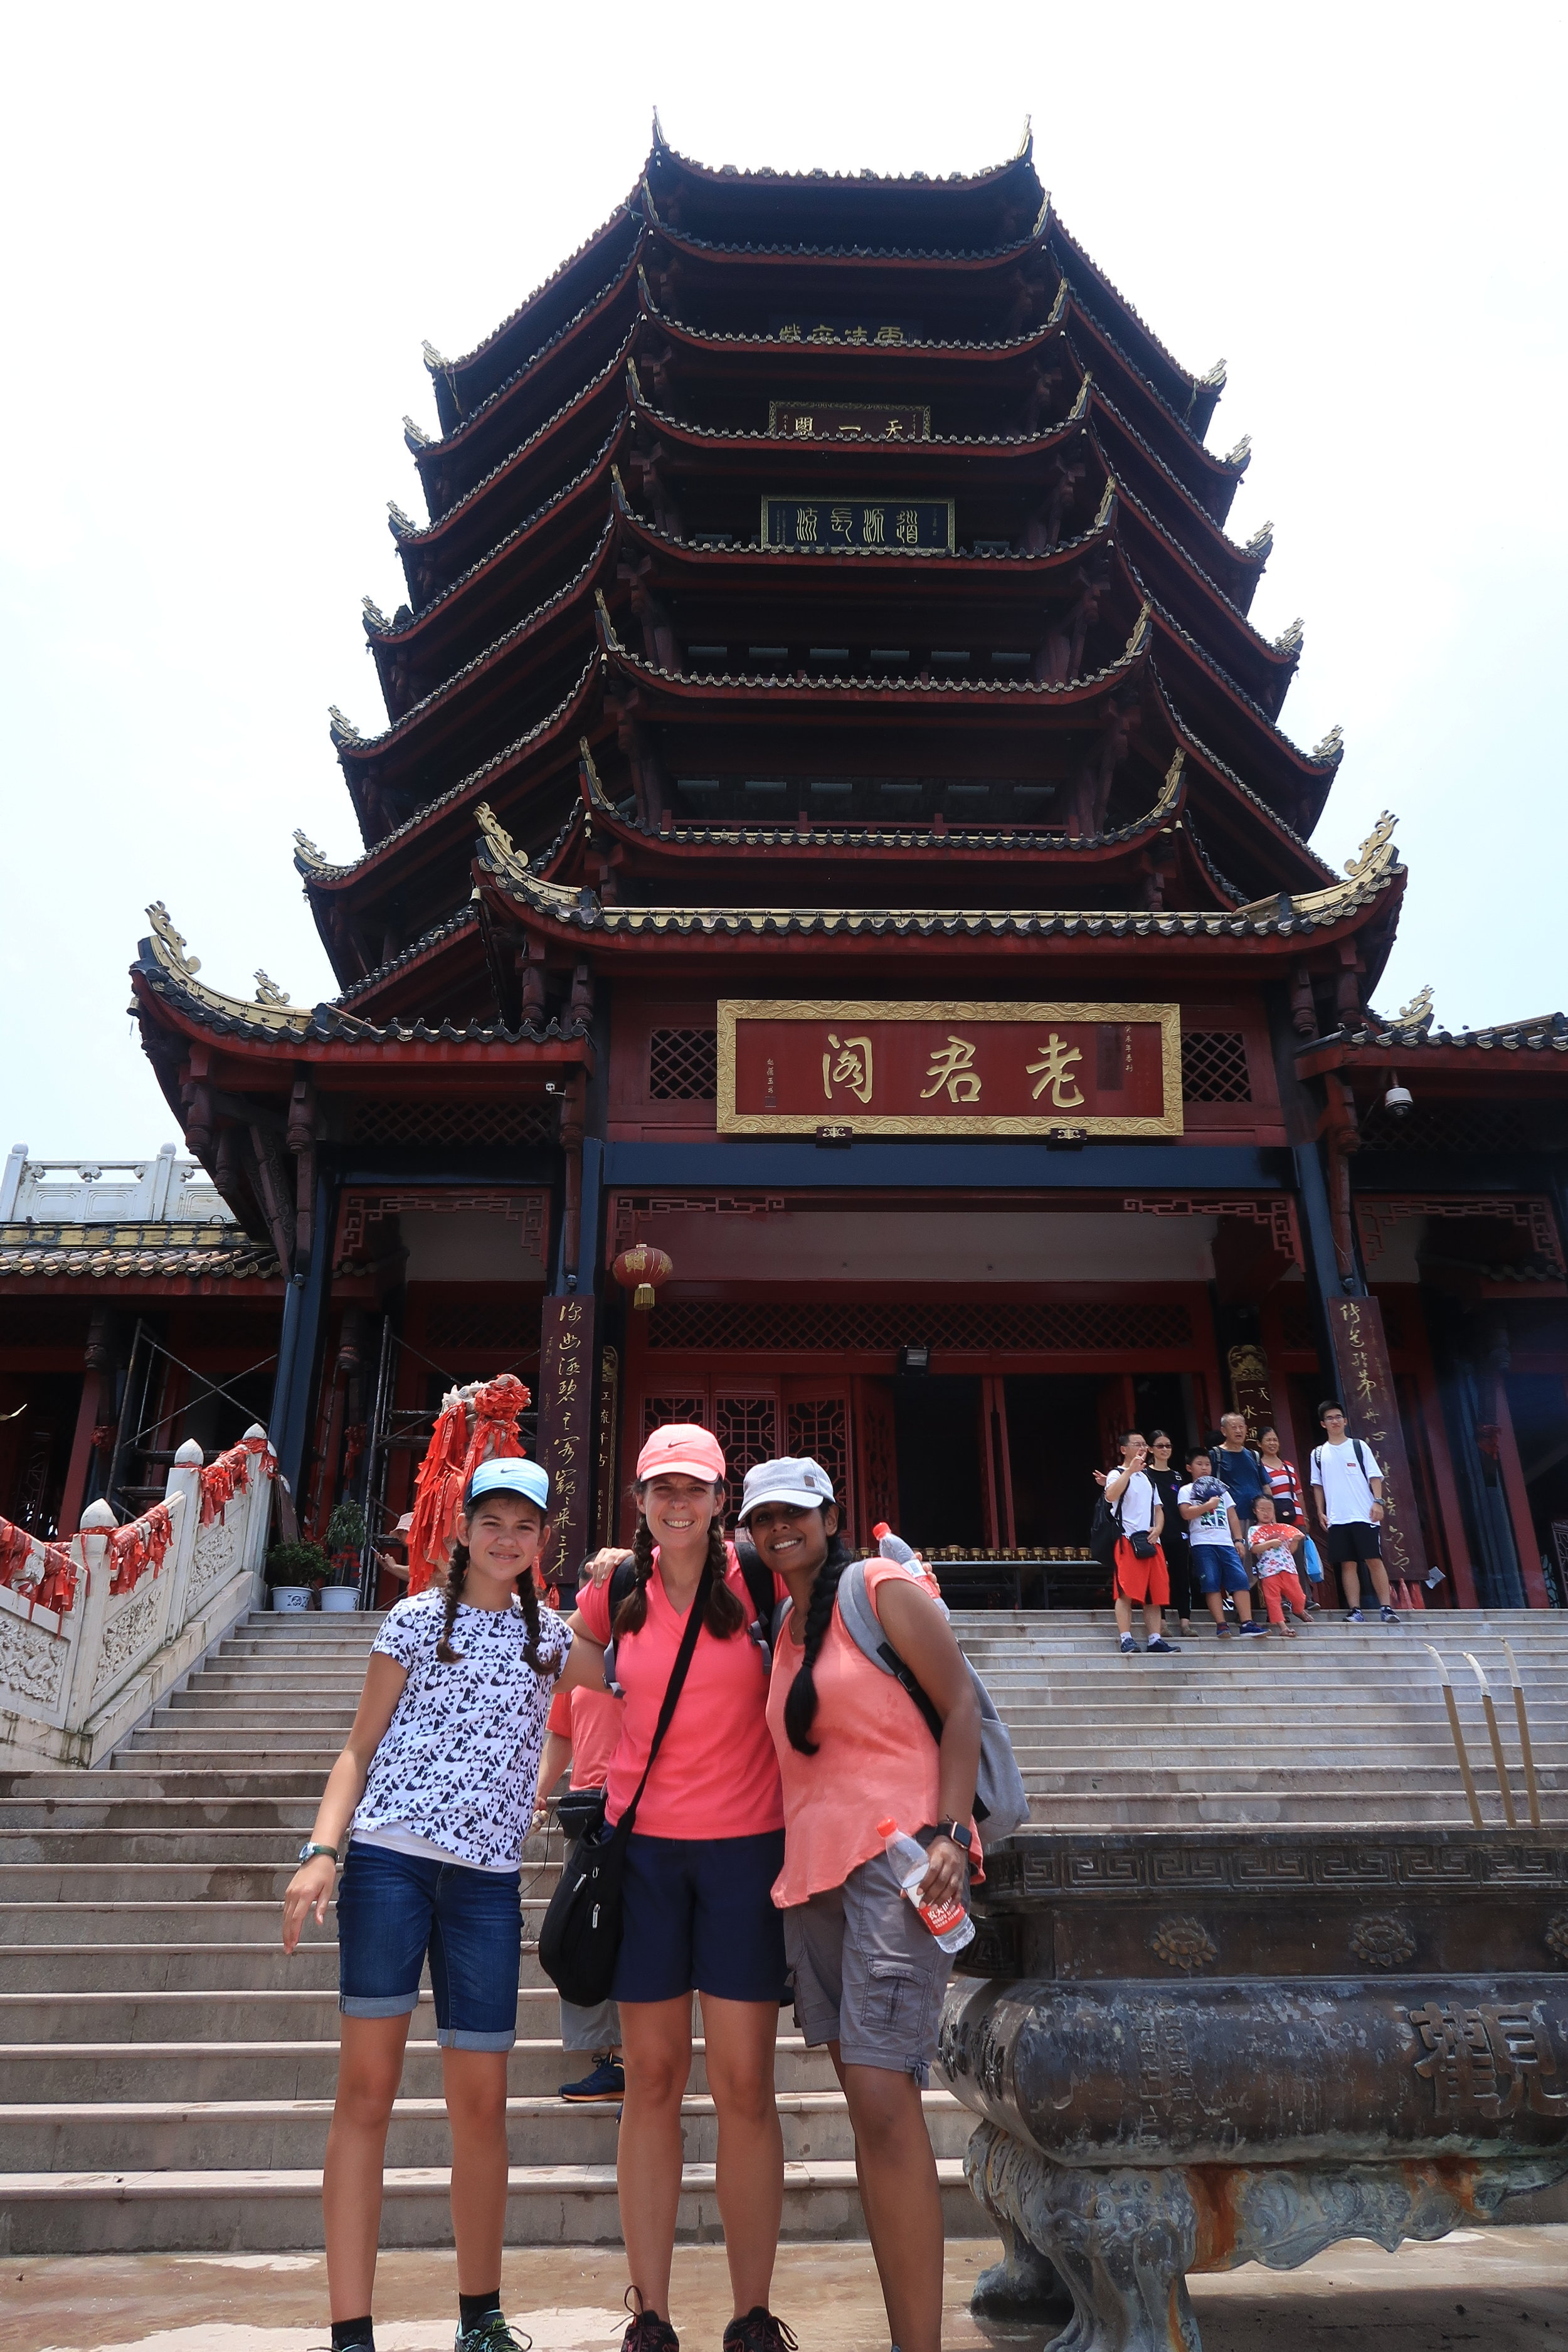 This is the temple at the top of the mountain!  We made it!  It was so hot and humid... we're actually soaking wet from sweat in this picture.